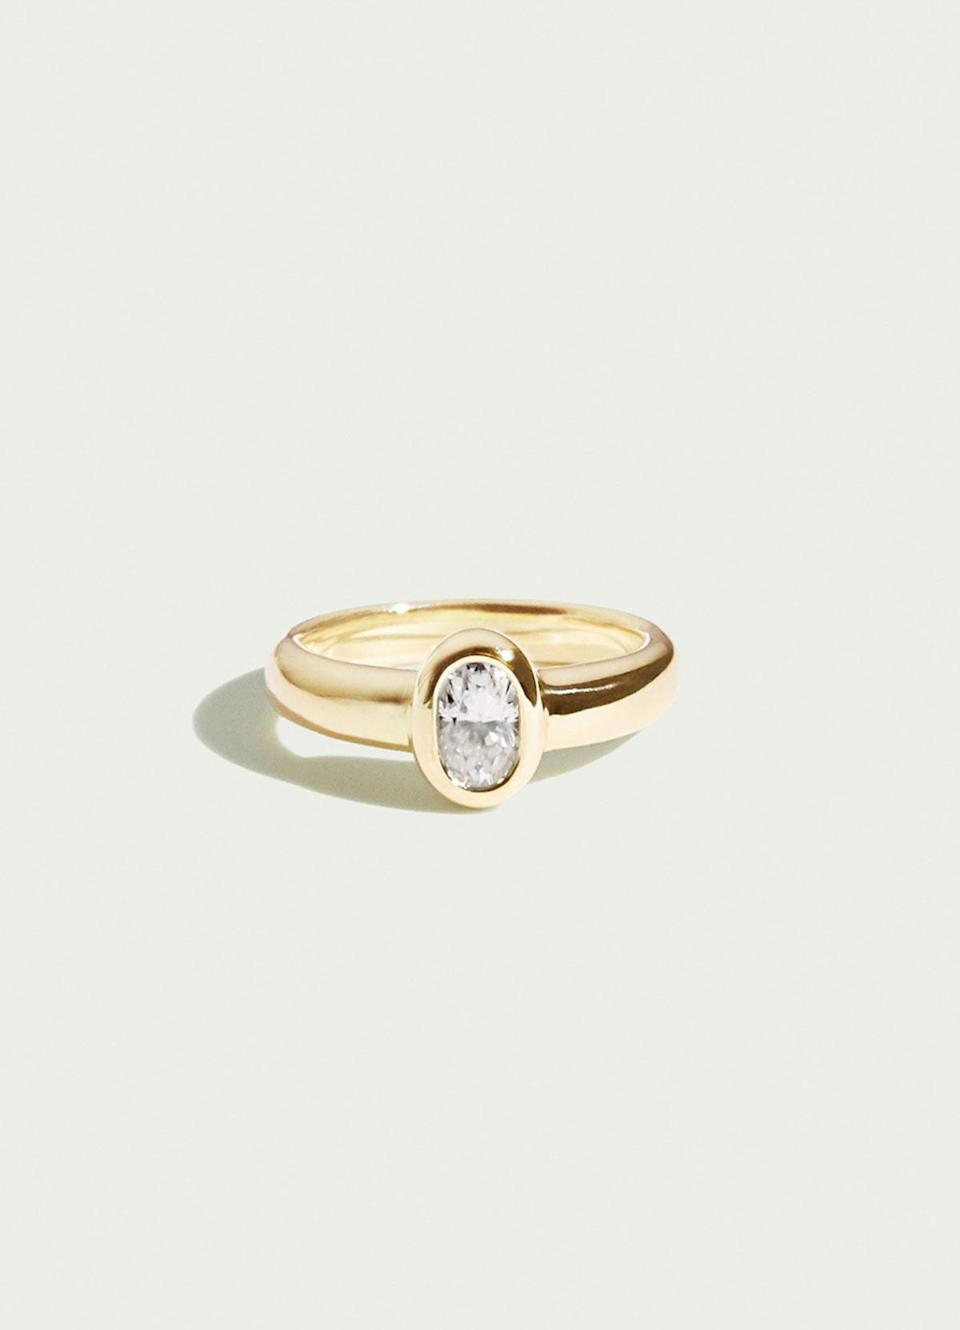 """Nicholson notes that over 90 percent of purchases on Ceremony are for yellow gold, which she says surprises many of her customers, who assume white gold or platinum metals are the most popular. $3800, Ceremony. <a href=""""https://ceremony.us/products/anise"""" rel=""""nofollow noopener"""" target=""""_blank"""" data-ylk=""""slk:Get it now!"""" class=""""link rapid-noclick-resp"""">Get it now!</a>"""